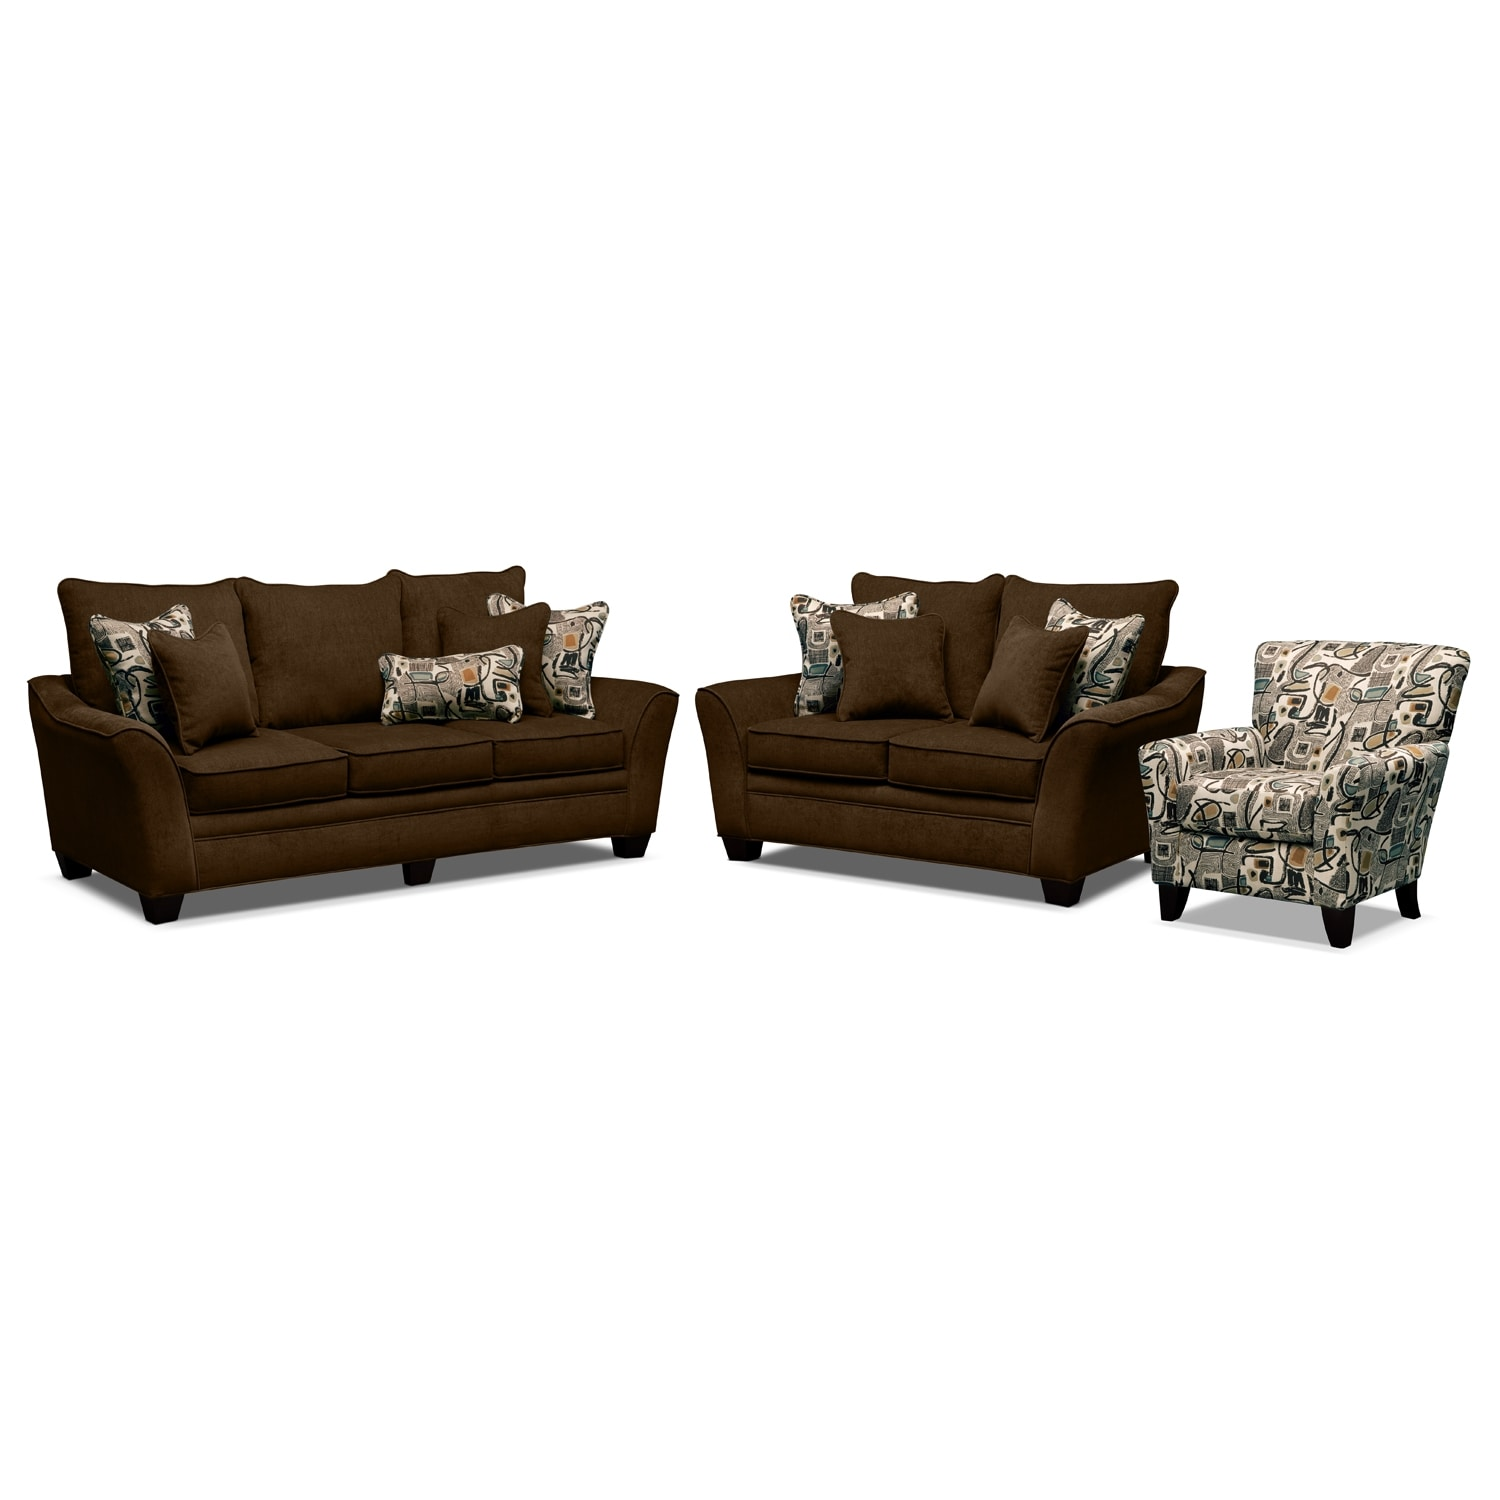 Living Room Furniture - Mandalay 3 Pc. Living Room w/Accent Chair